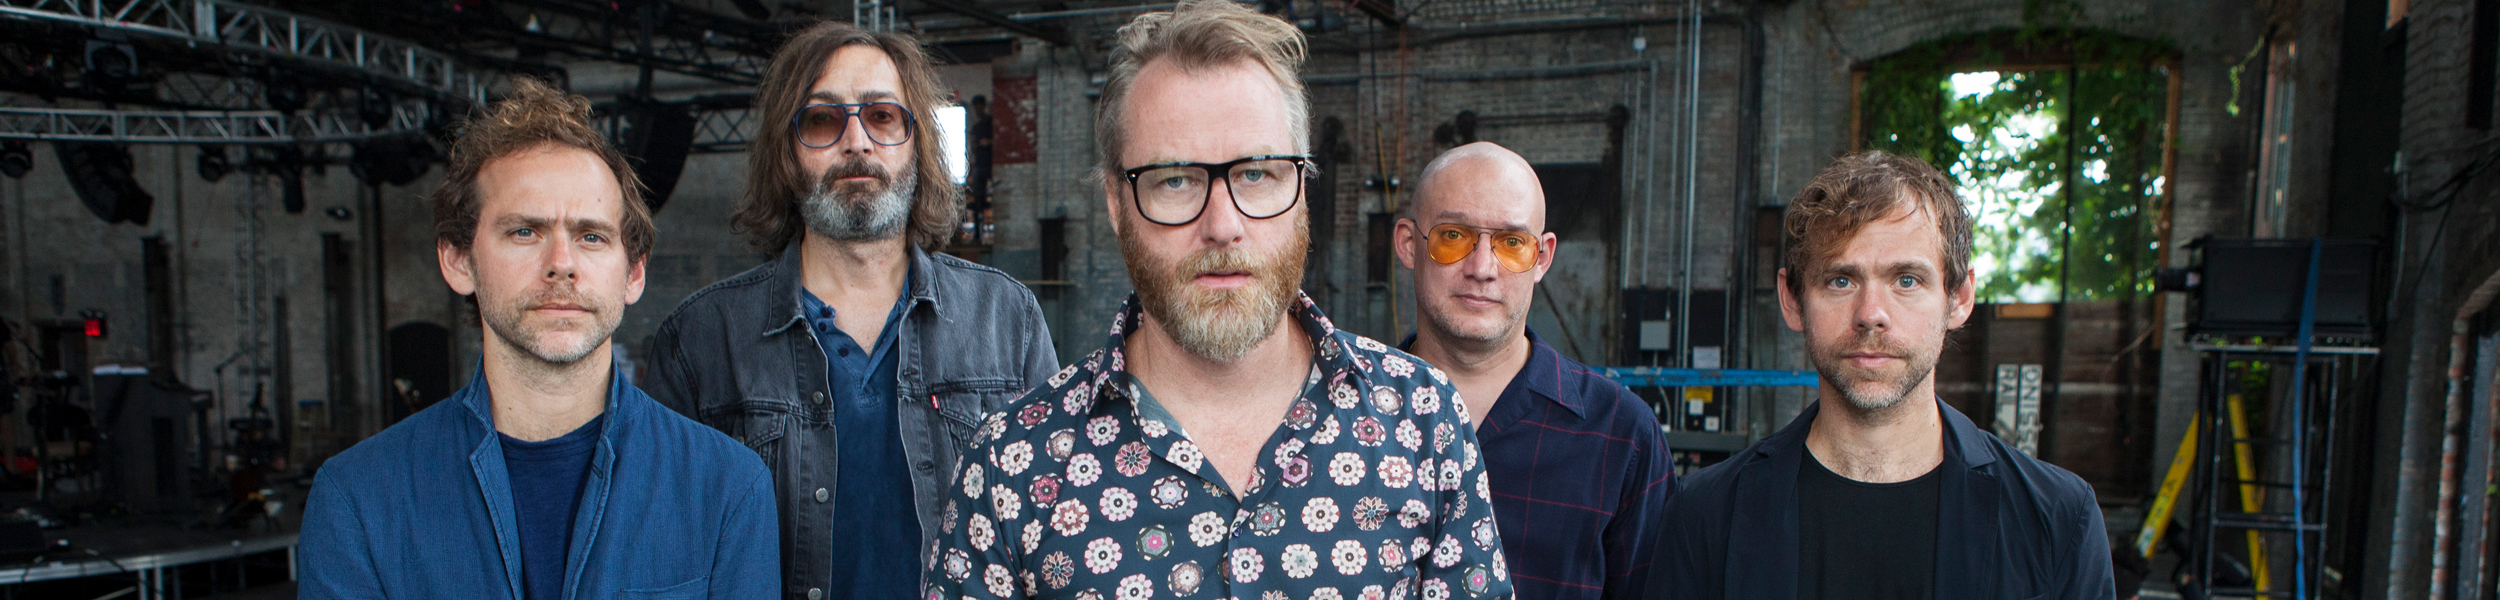 The National - 'Sleep Well Beast' wins GRAMMY for Best Alternative Music Album